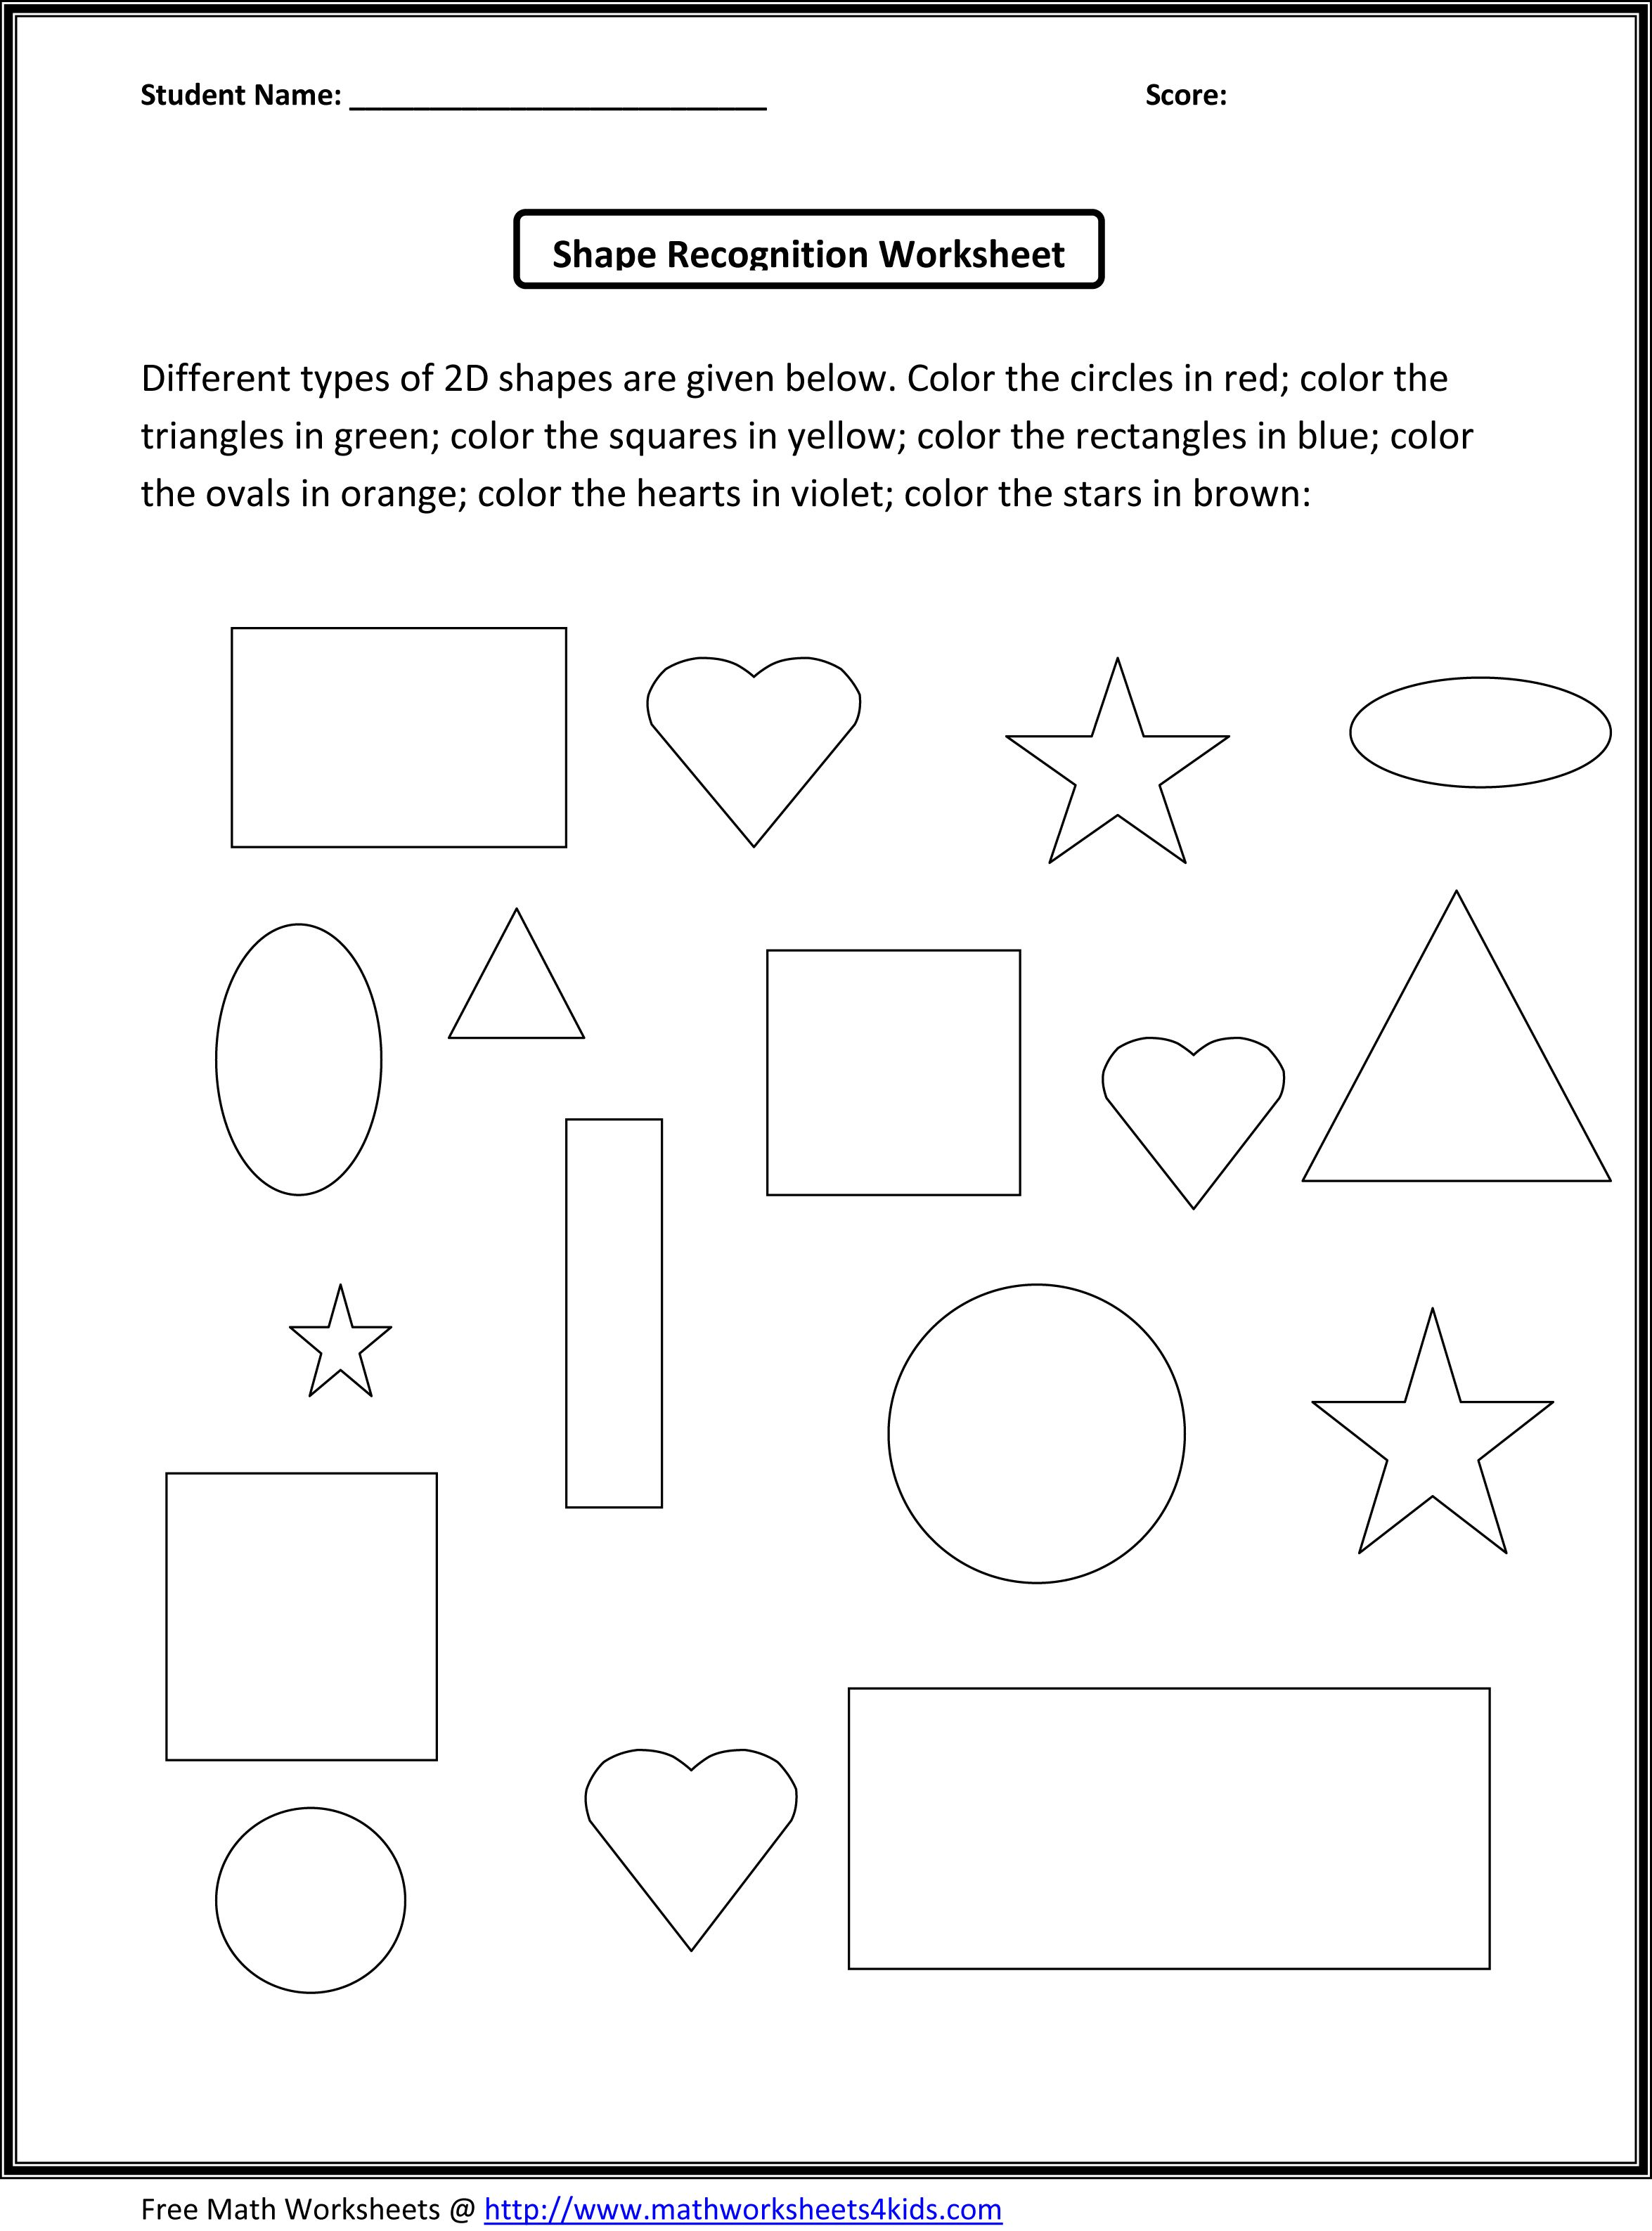 3d Shapes For Kids Worksheets cakepins.com | Books Worth Reading ...